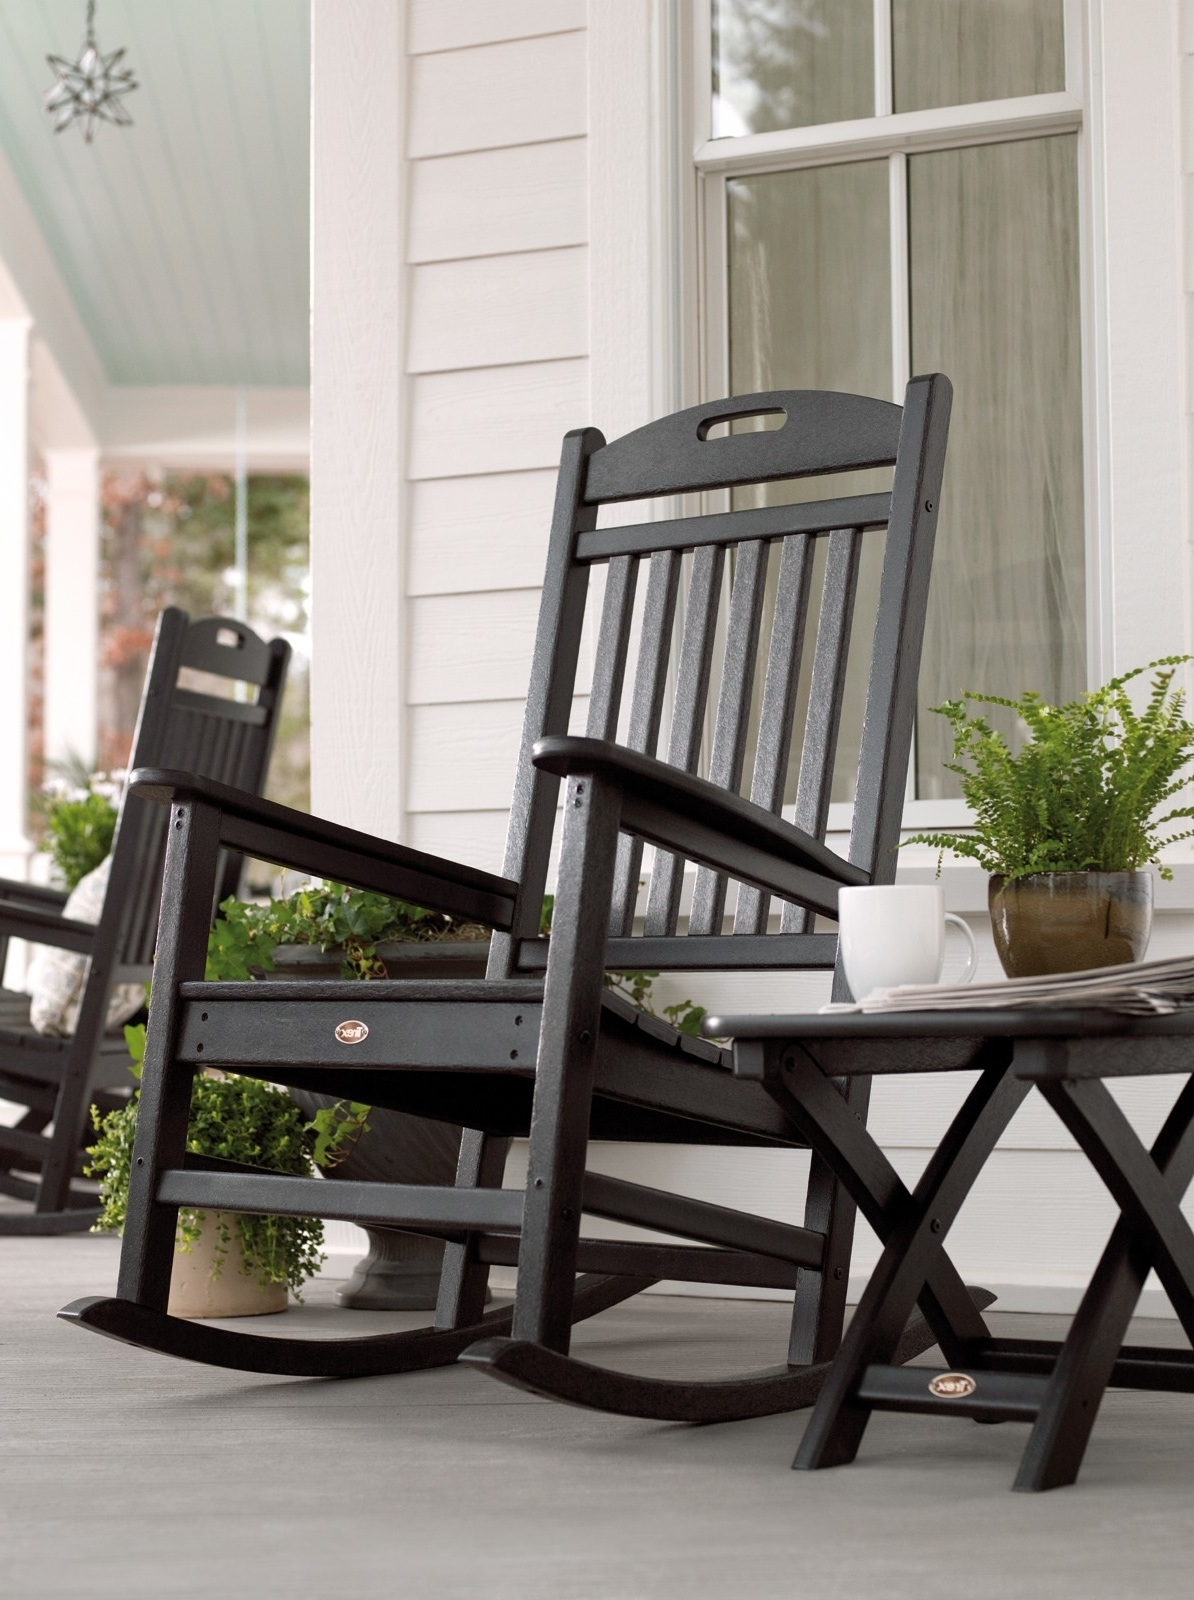 Patio Wooden Rocking Chairs For Current Patio & Garden : Outdoor Rocking Chair Seat Cushions Outdoor Rocking (View 6 of 15)